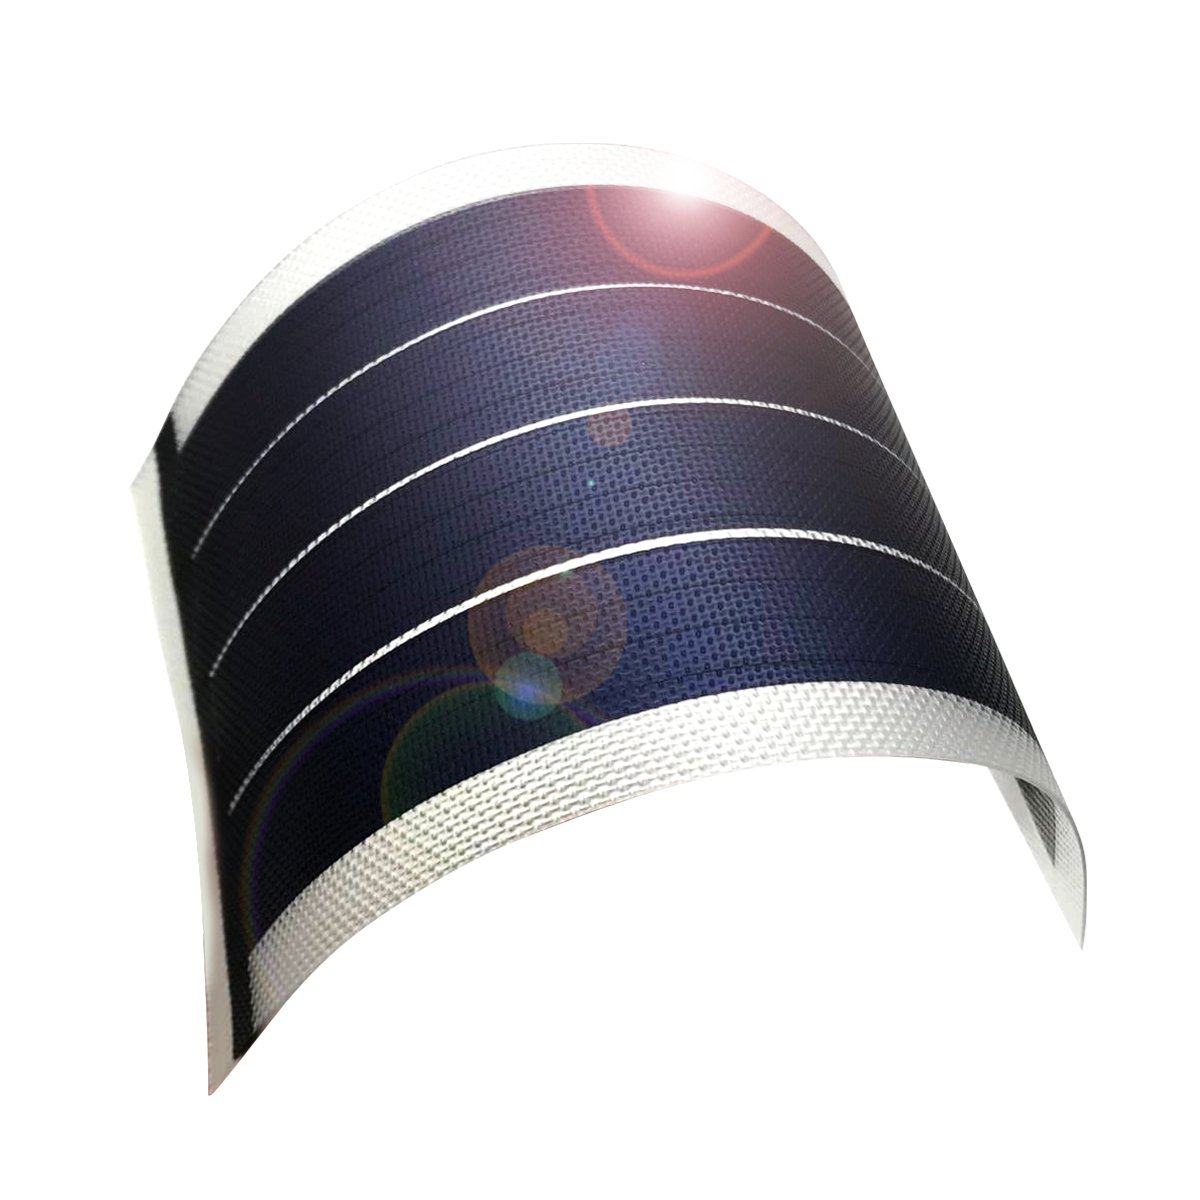 jiang Fexible Solar Panel Solar Power Charger Thin Film diy 1W 6V Photovoltaic Cells (clear)